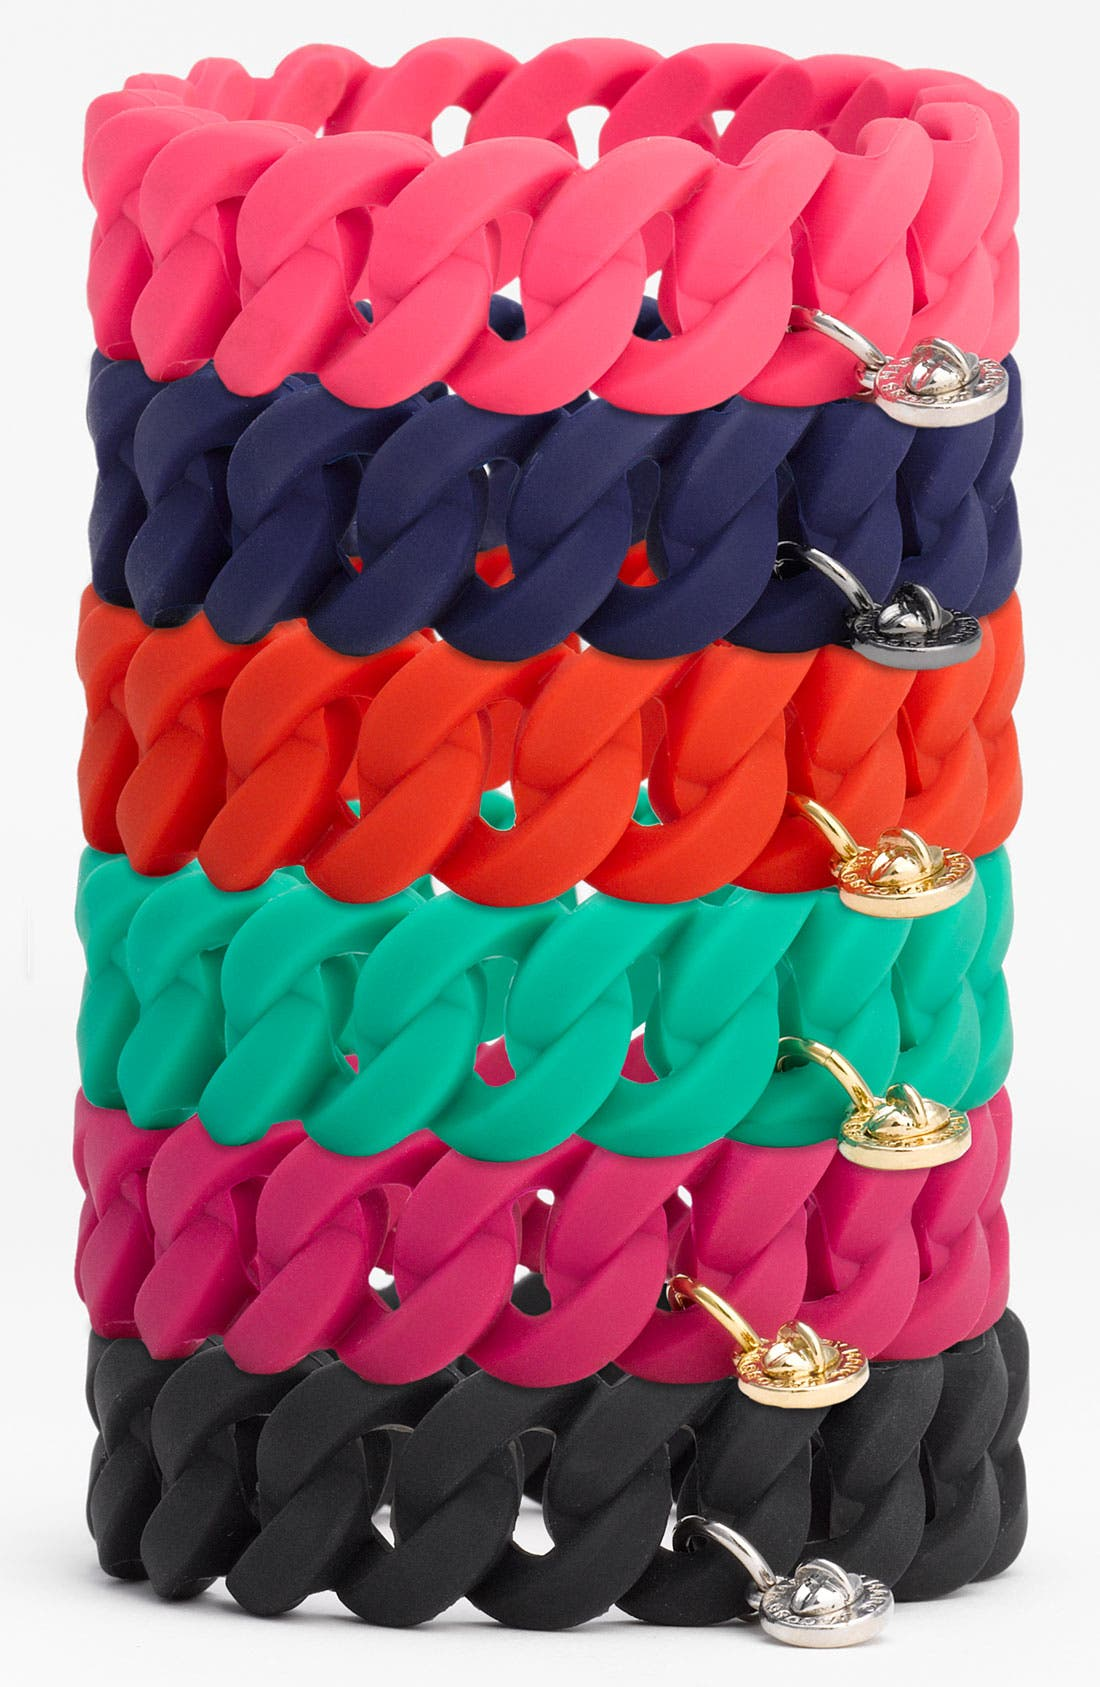 Alternate Image 1 Selected - MARC BY MARC JACOBS 'Rubber Turnlock' Stretch Bracelet